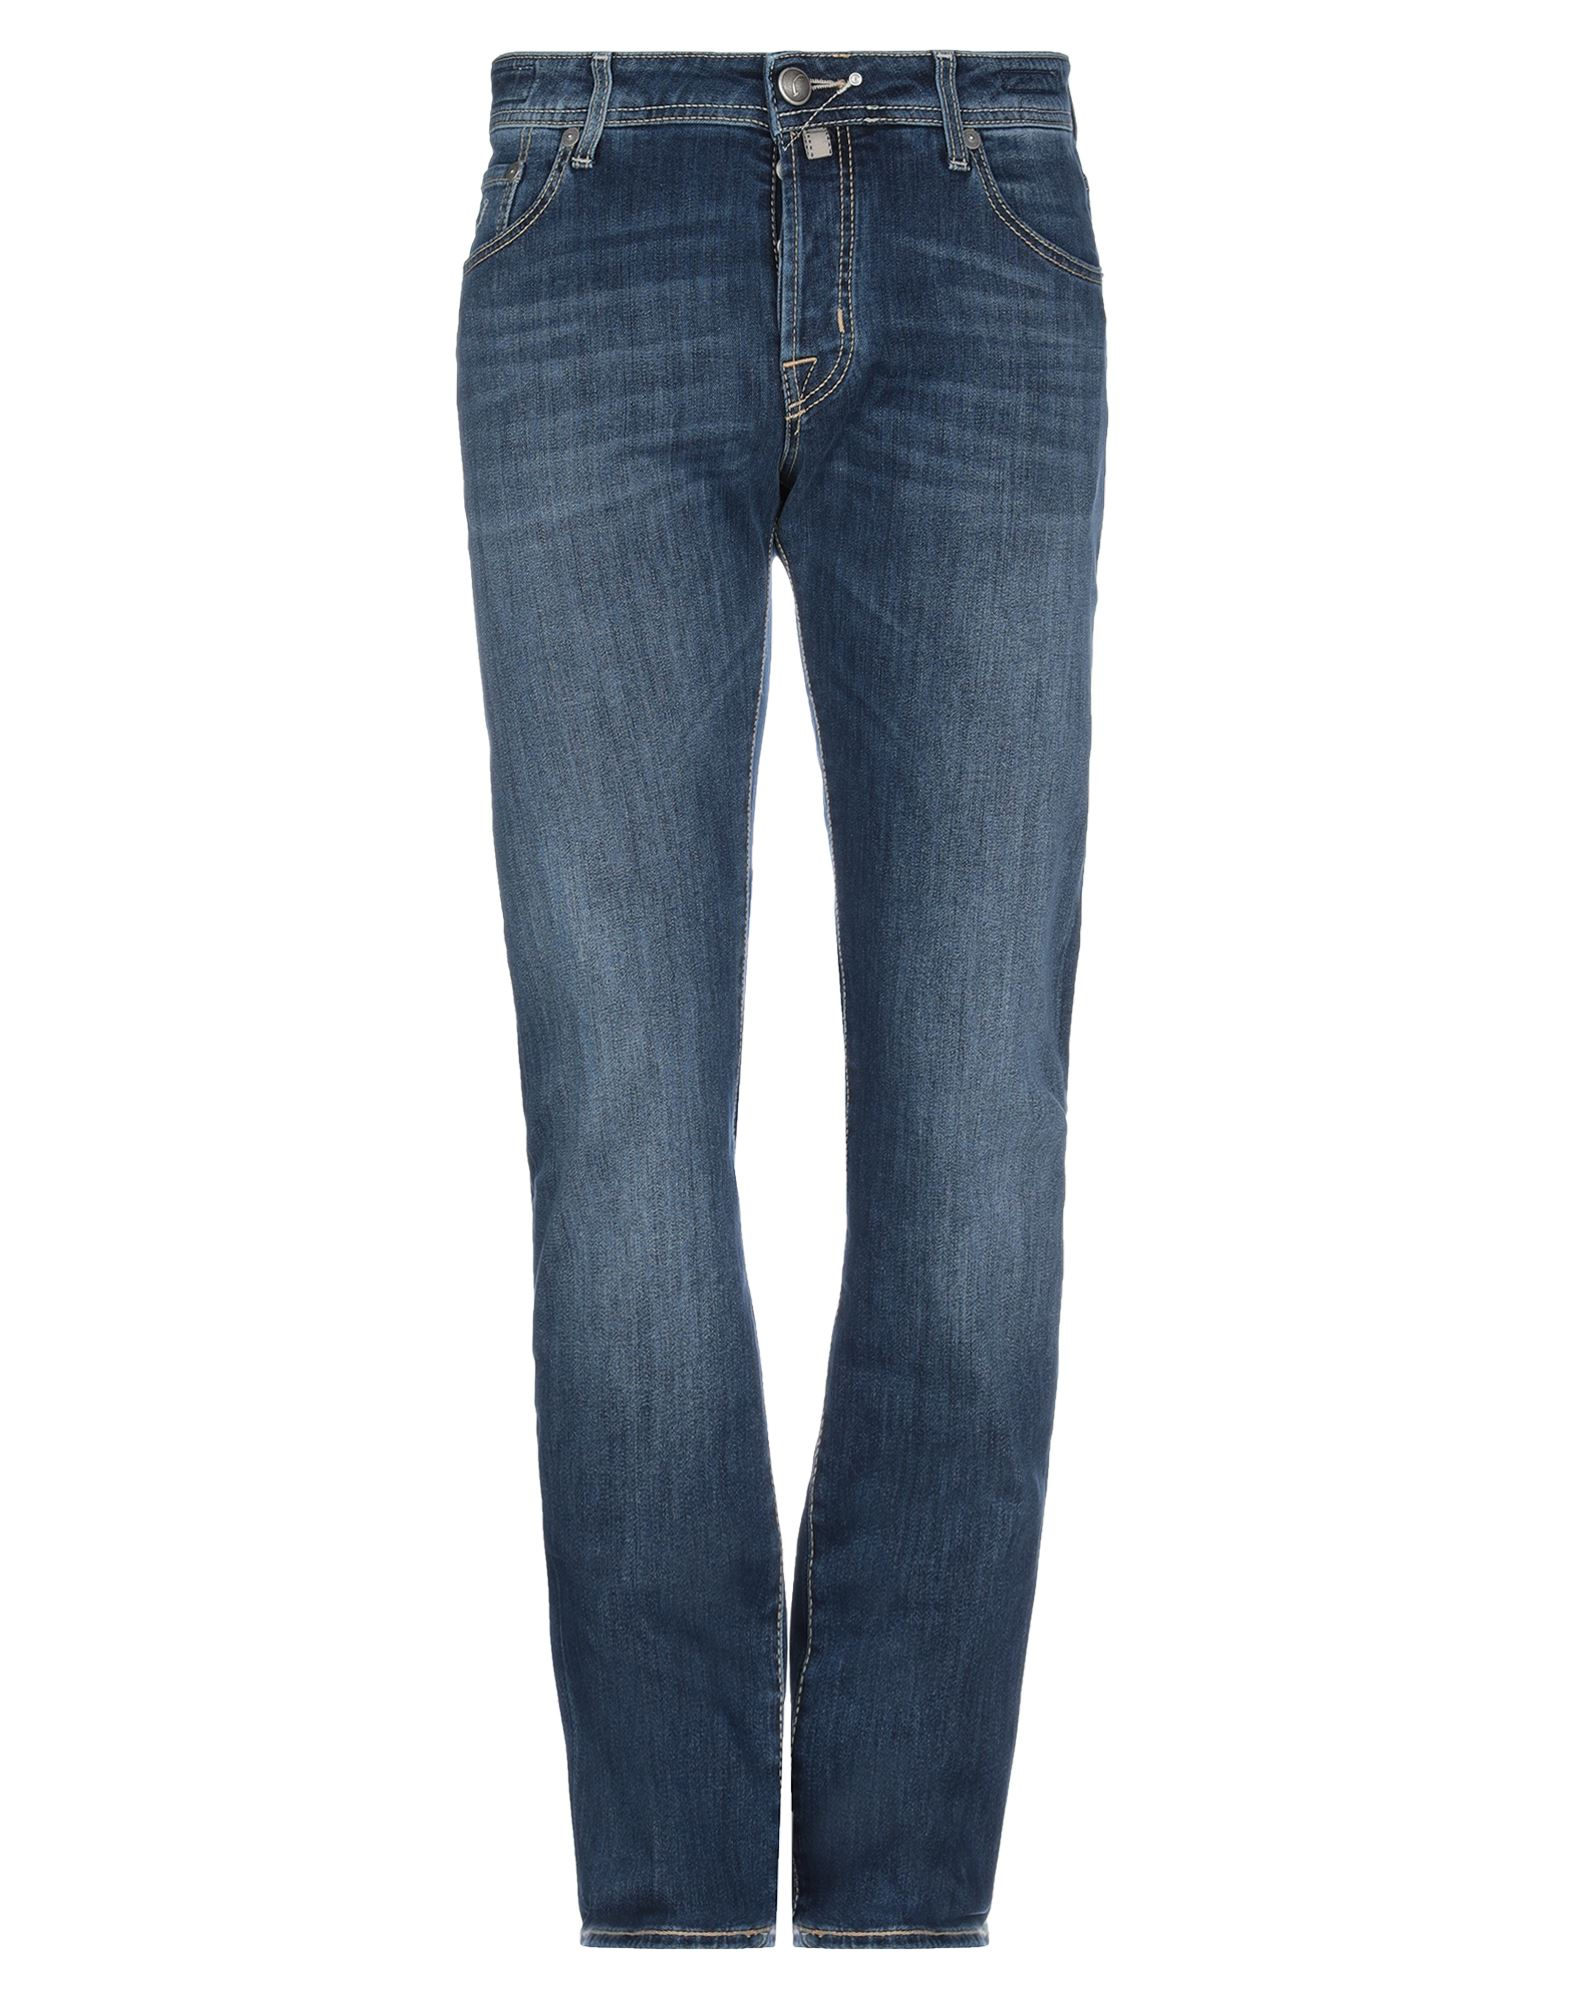 JACOB COHЁN Denim pants - Item 42826514